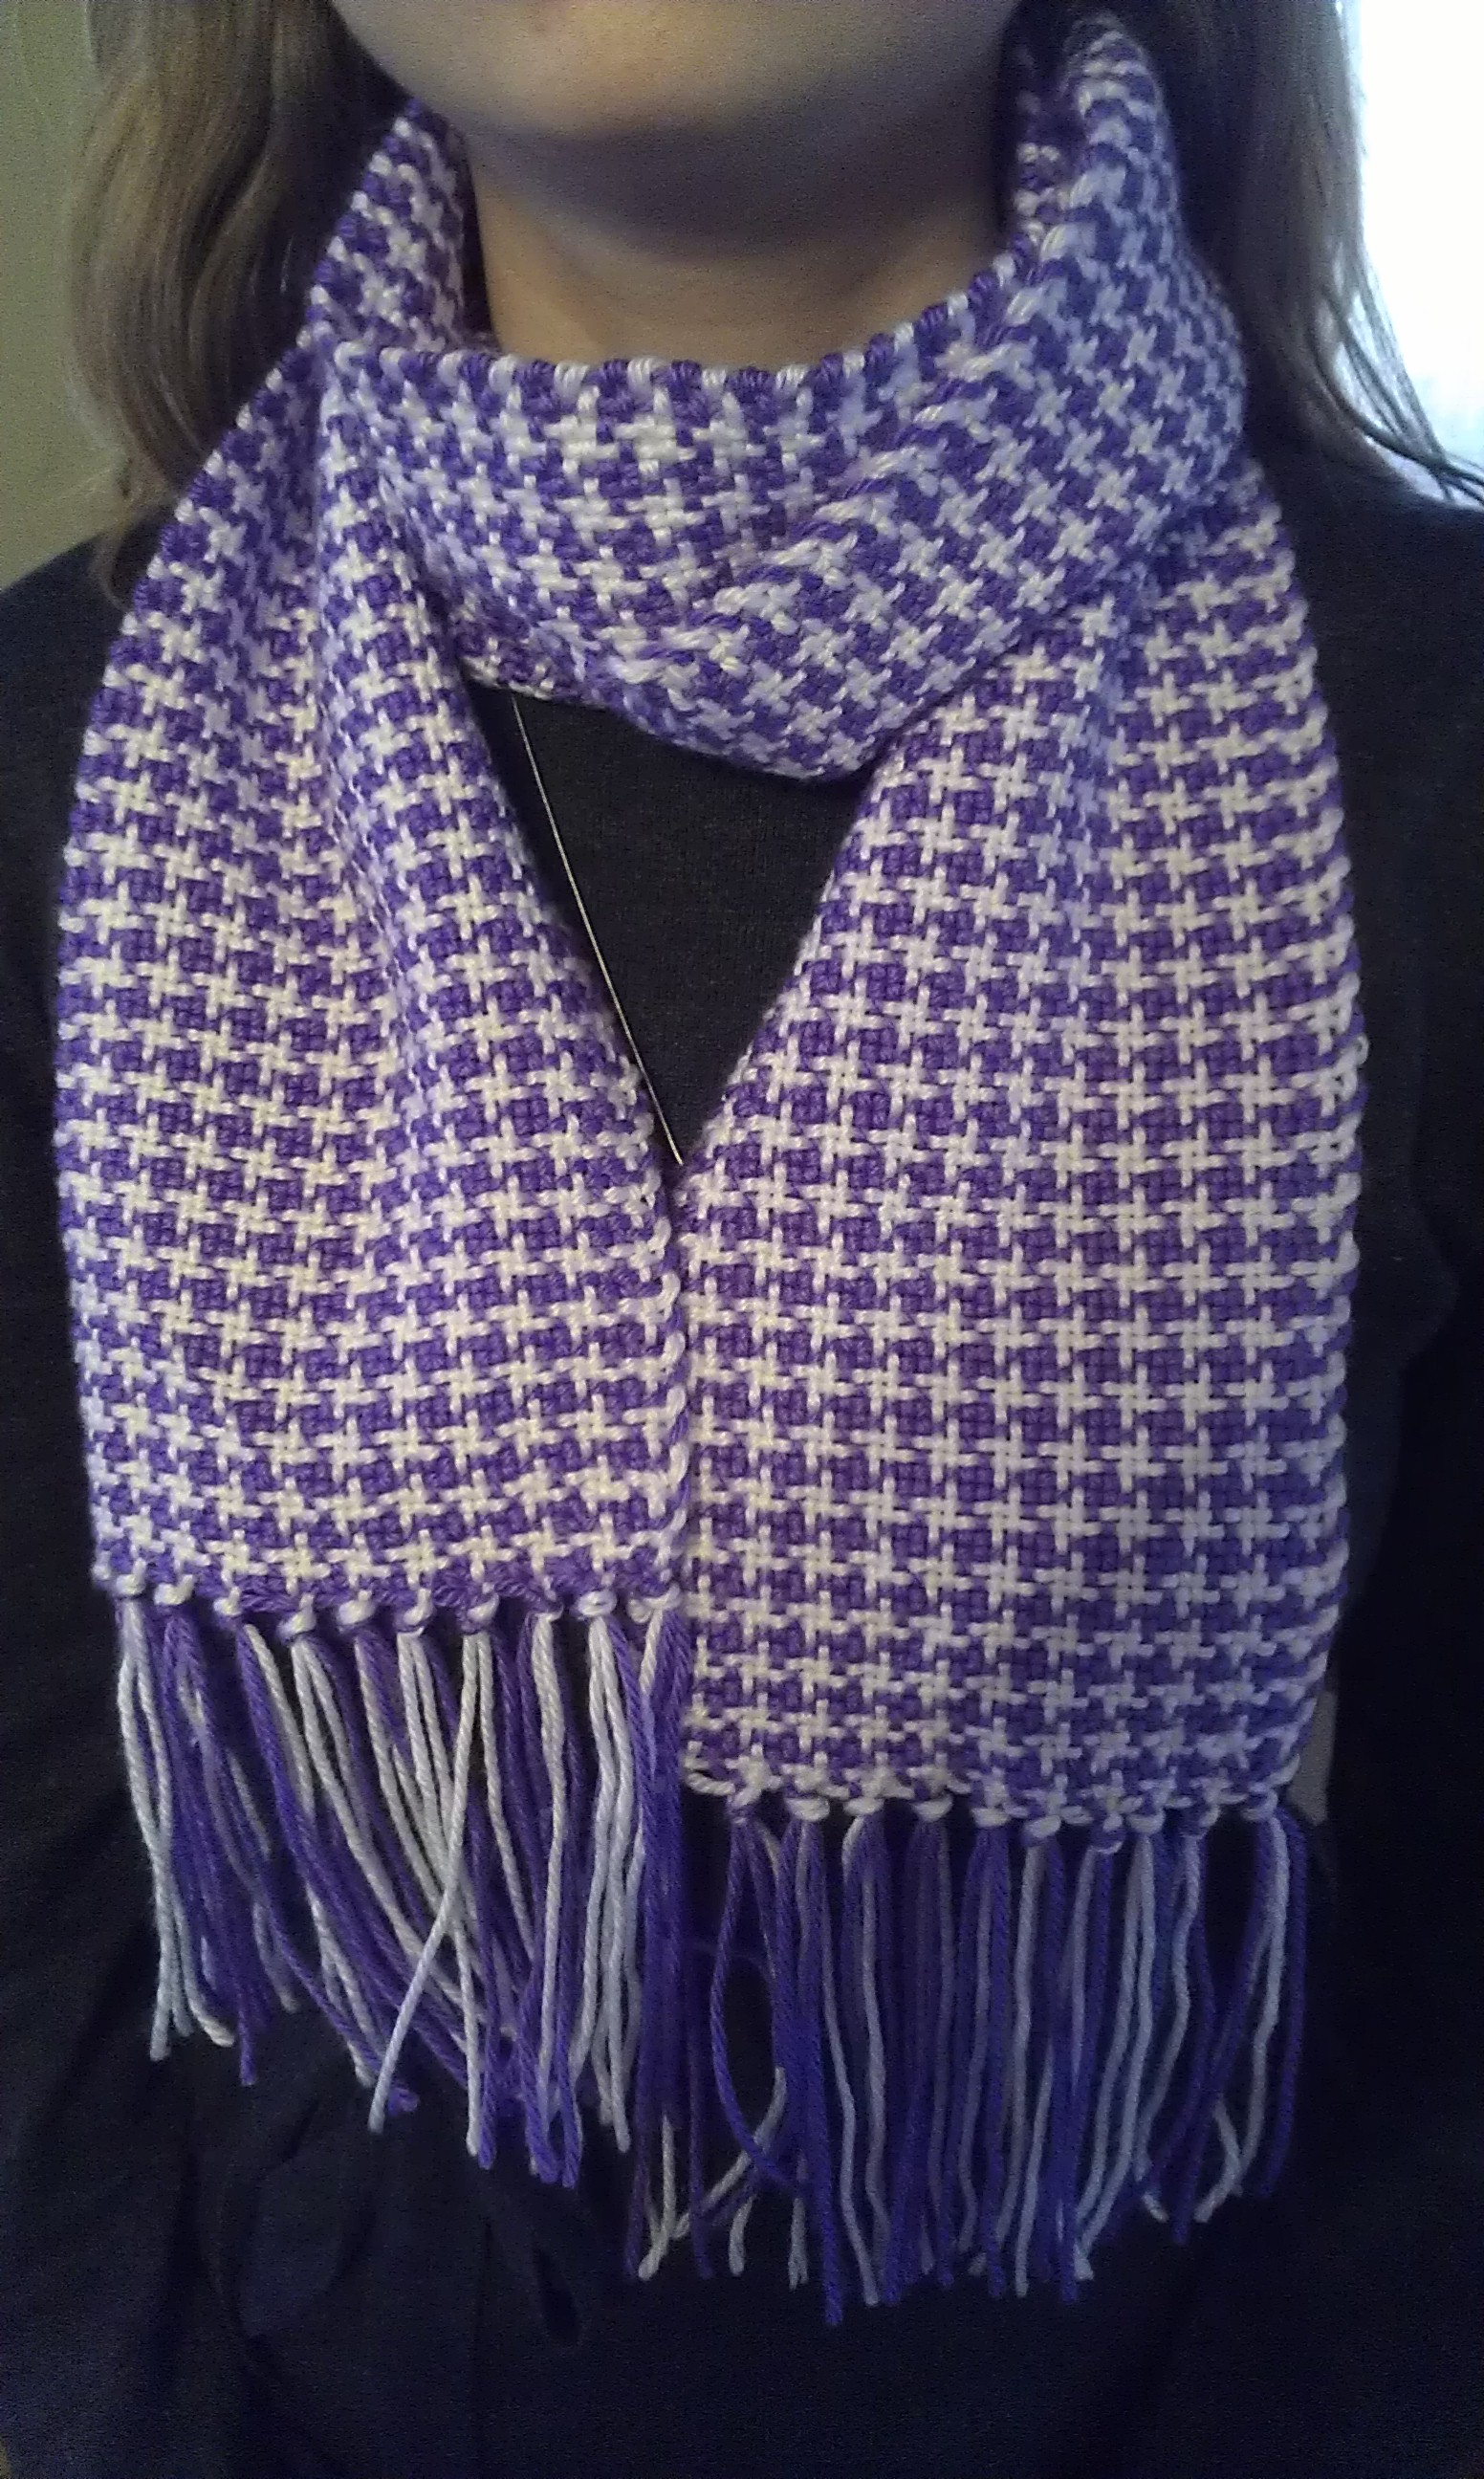 How To Weave The Houndstooth Pattern Lili Amp Mum S